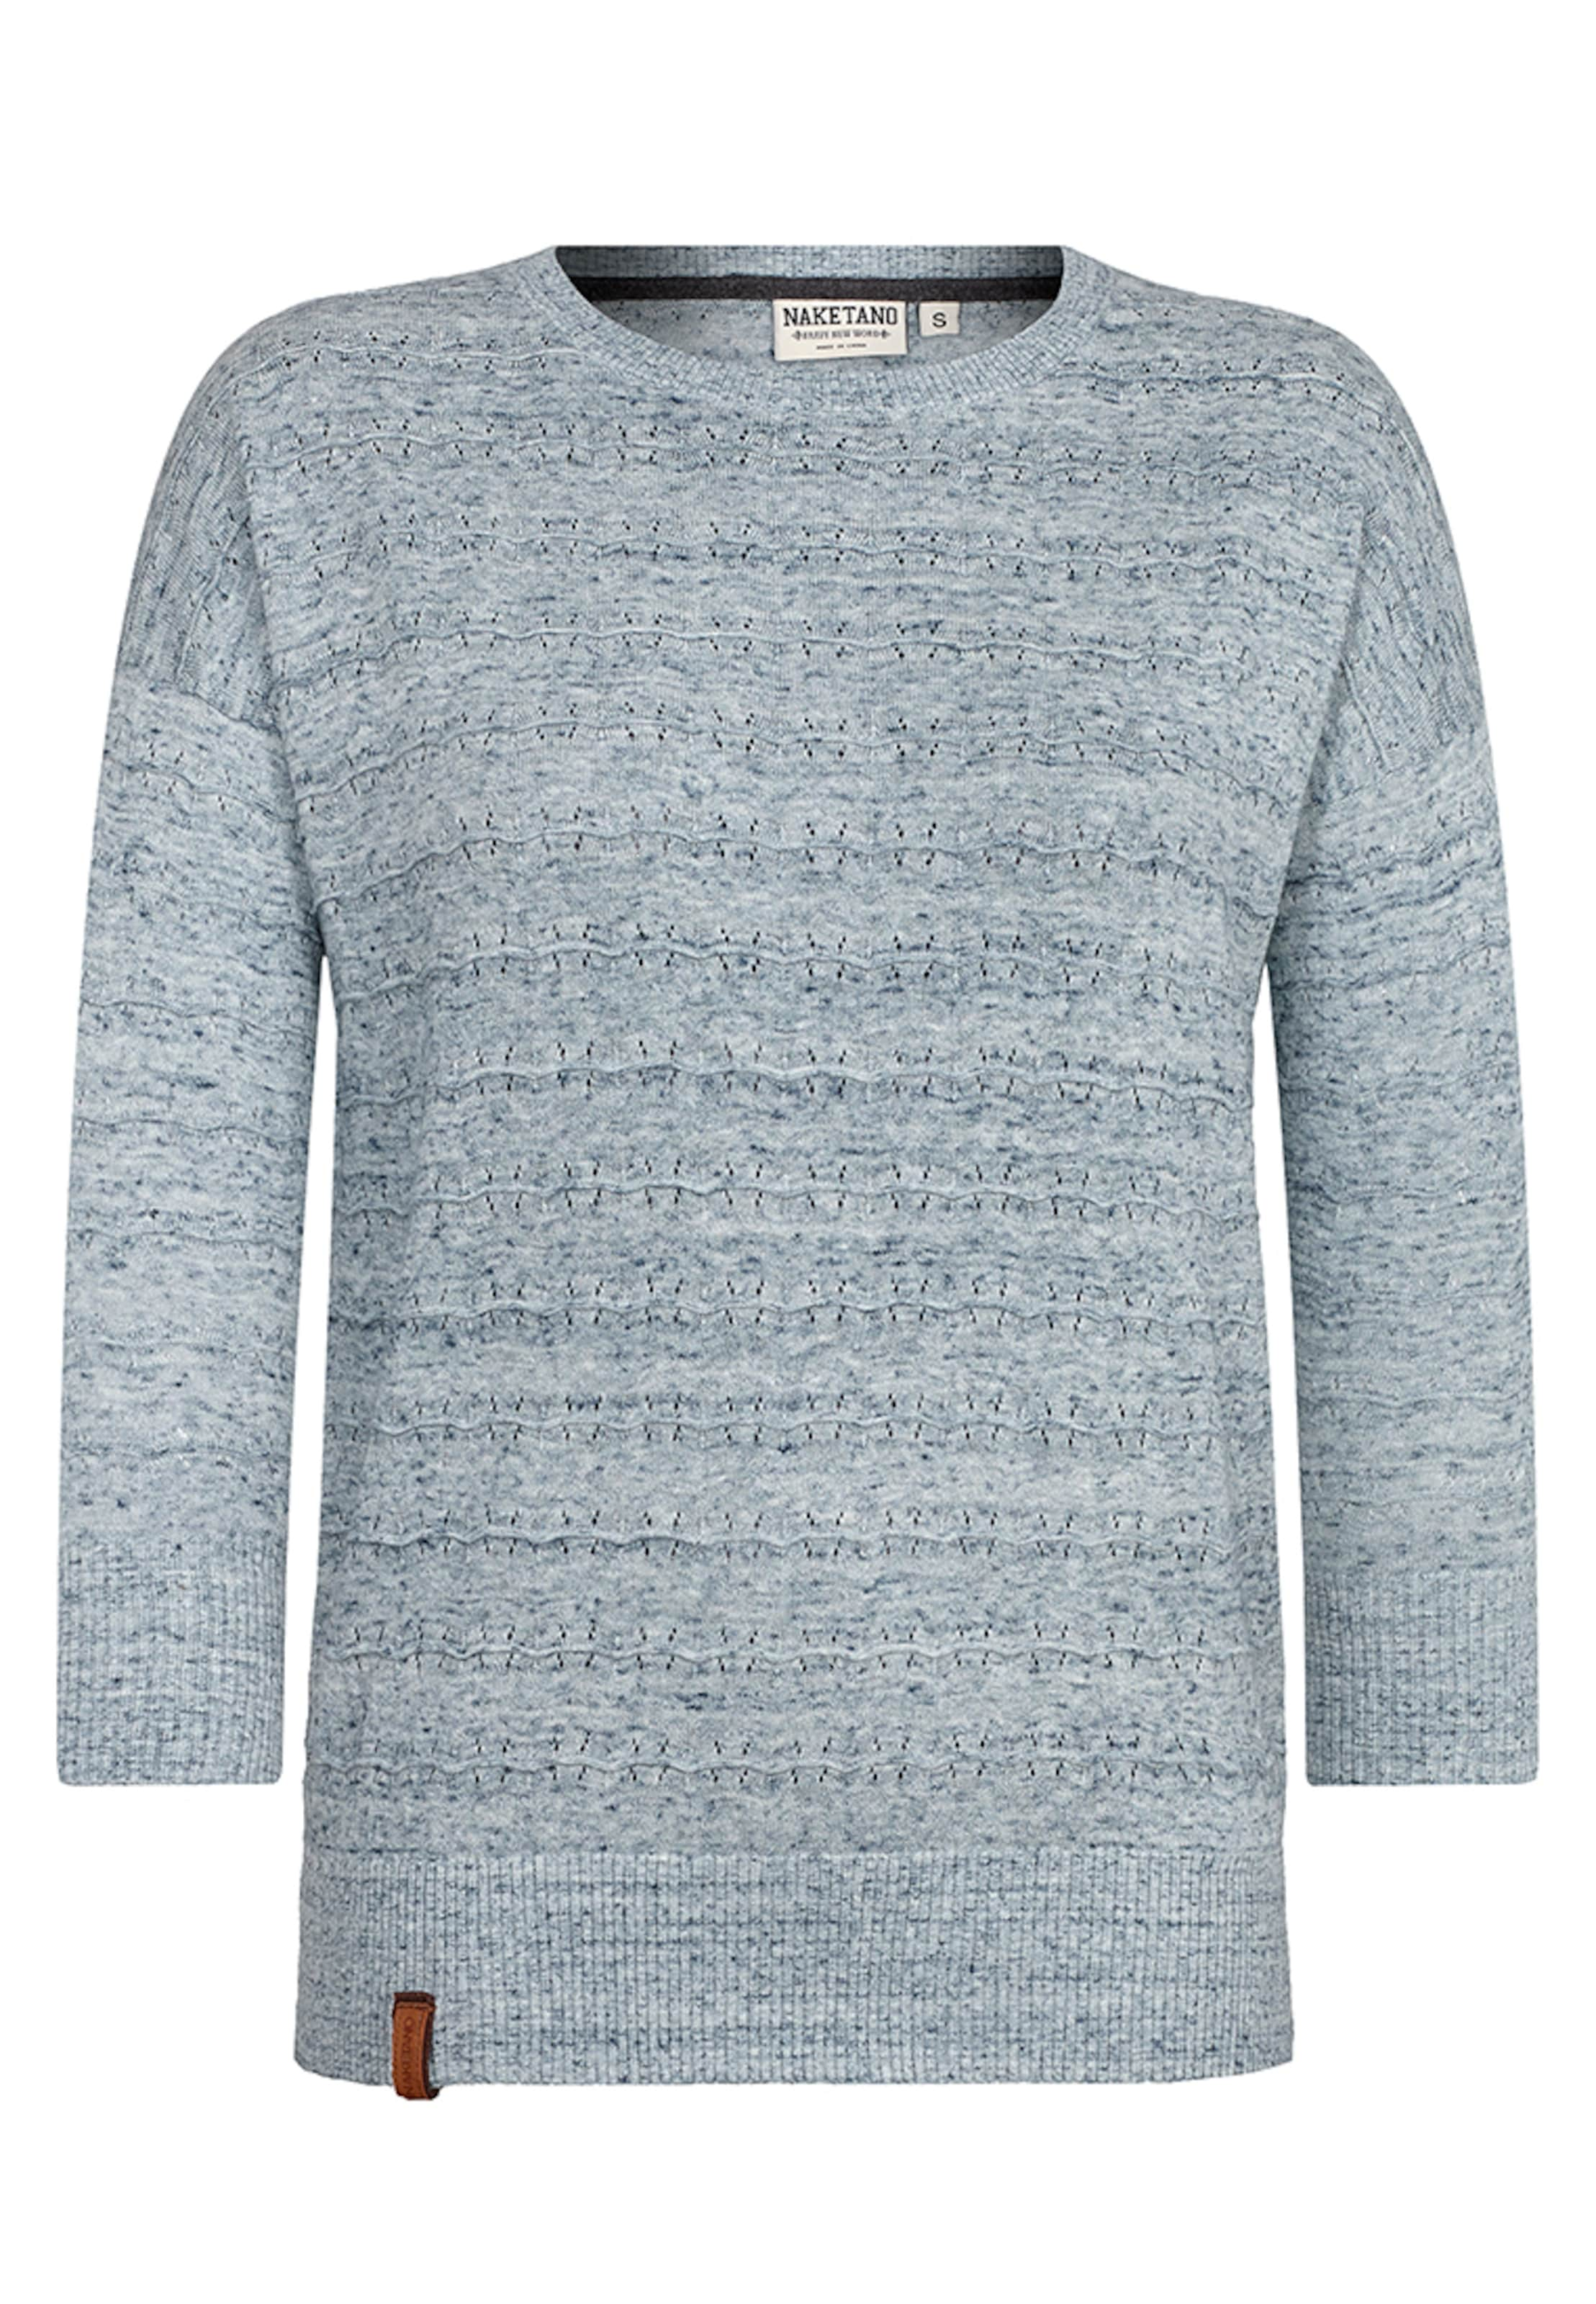 Naketano Soul' Hellblau 'the Pullover In sdxhBtCQro